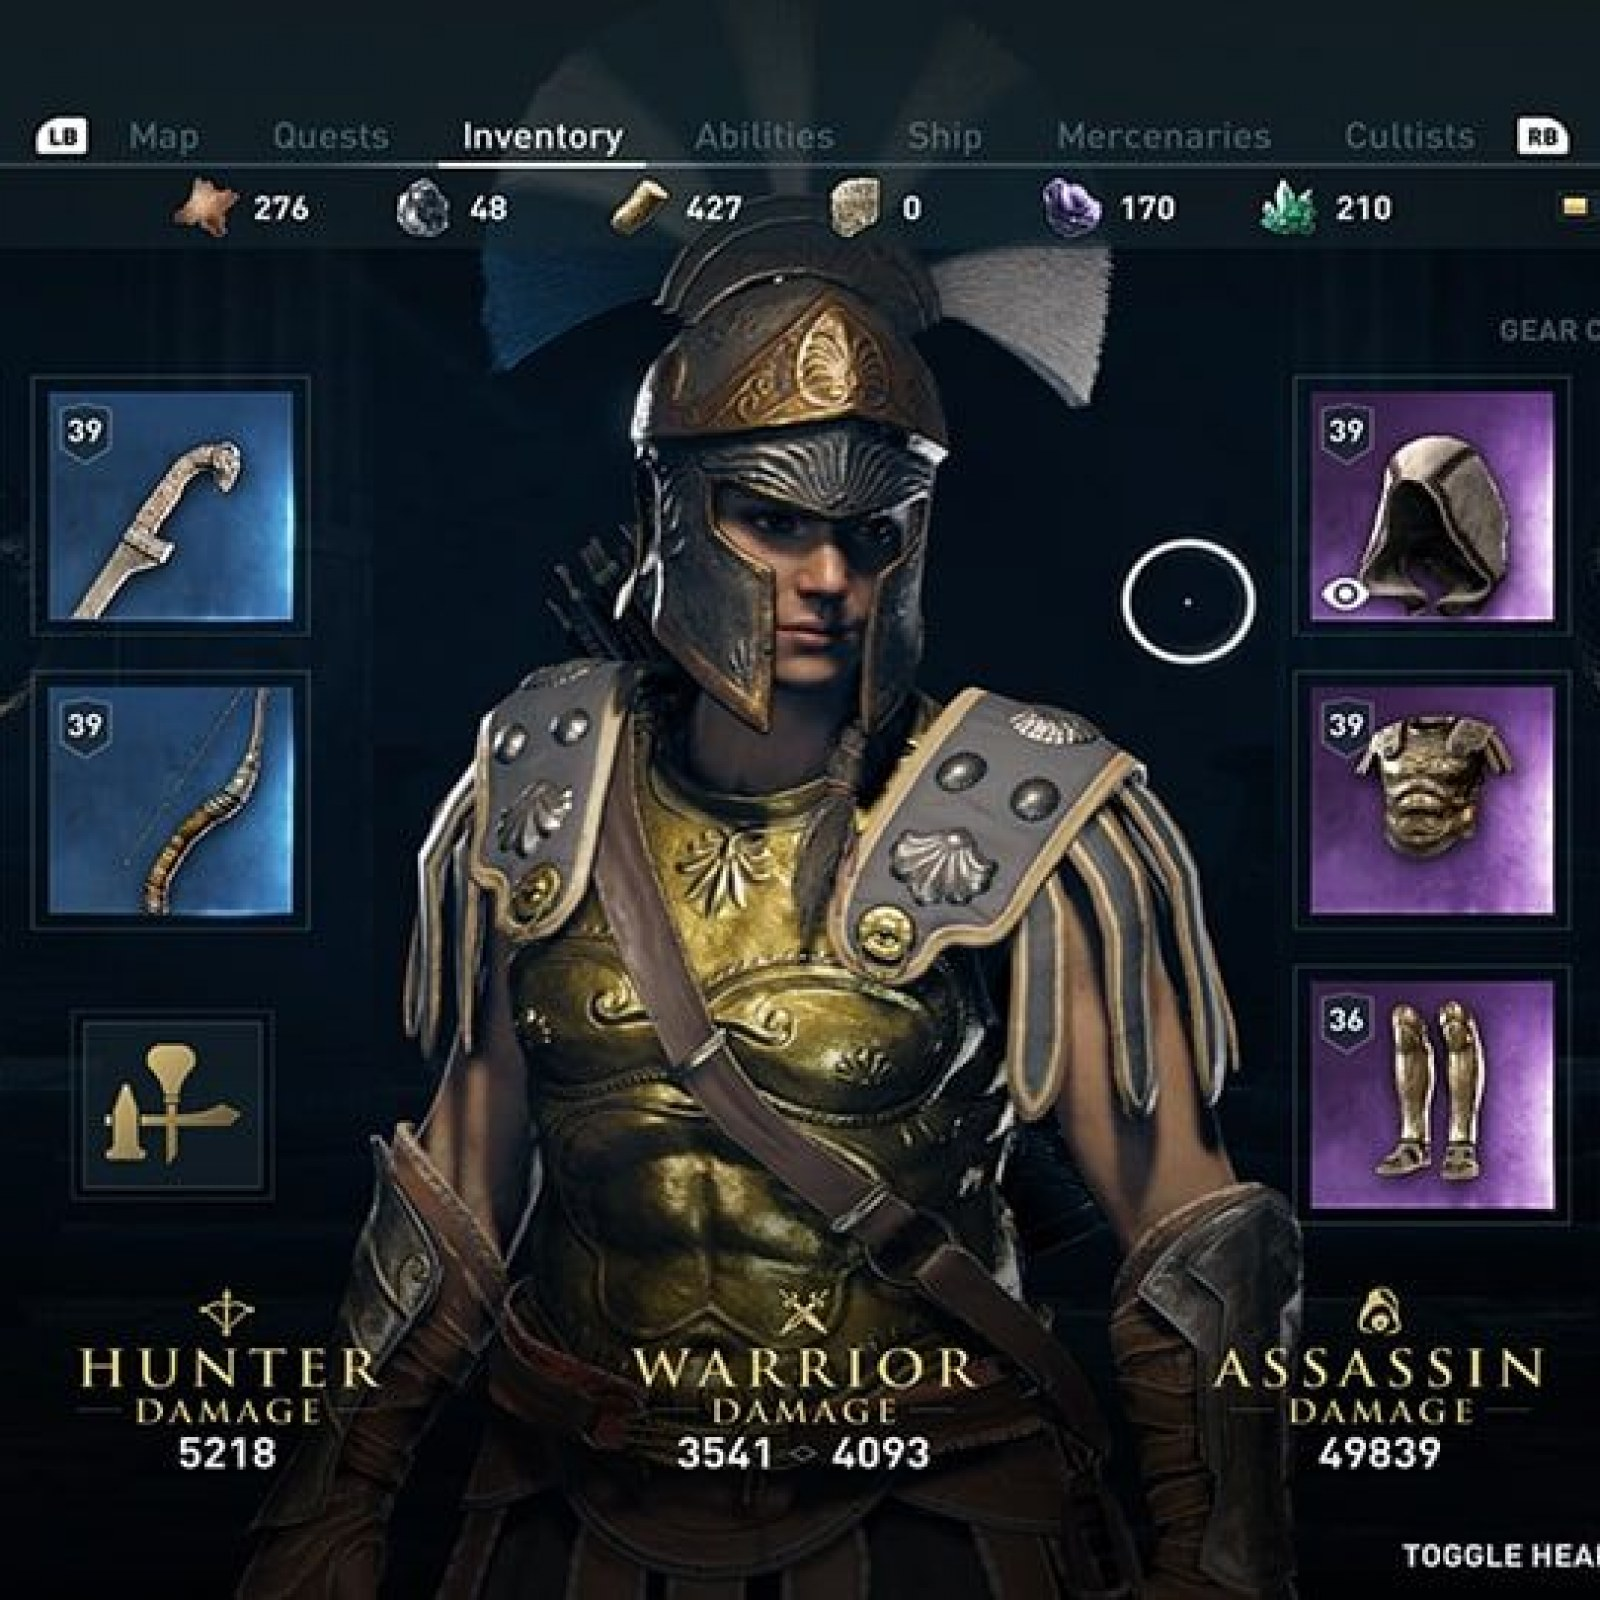 Assassin S Creed Odyssey 1 07 Patch Notes Increased Level Cap New Missions And More